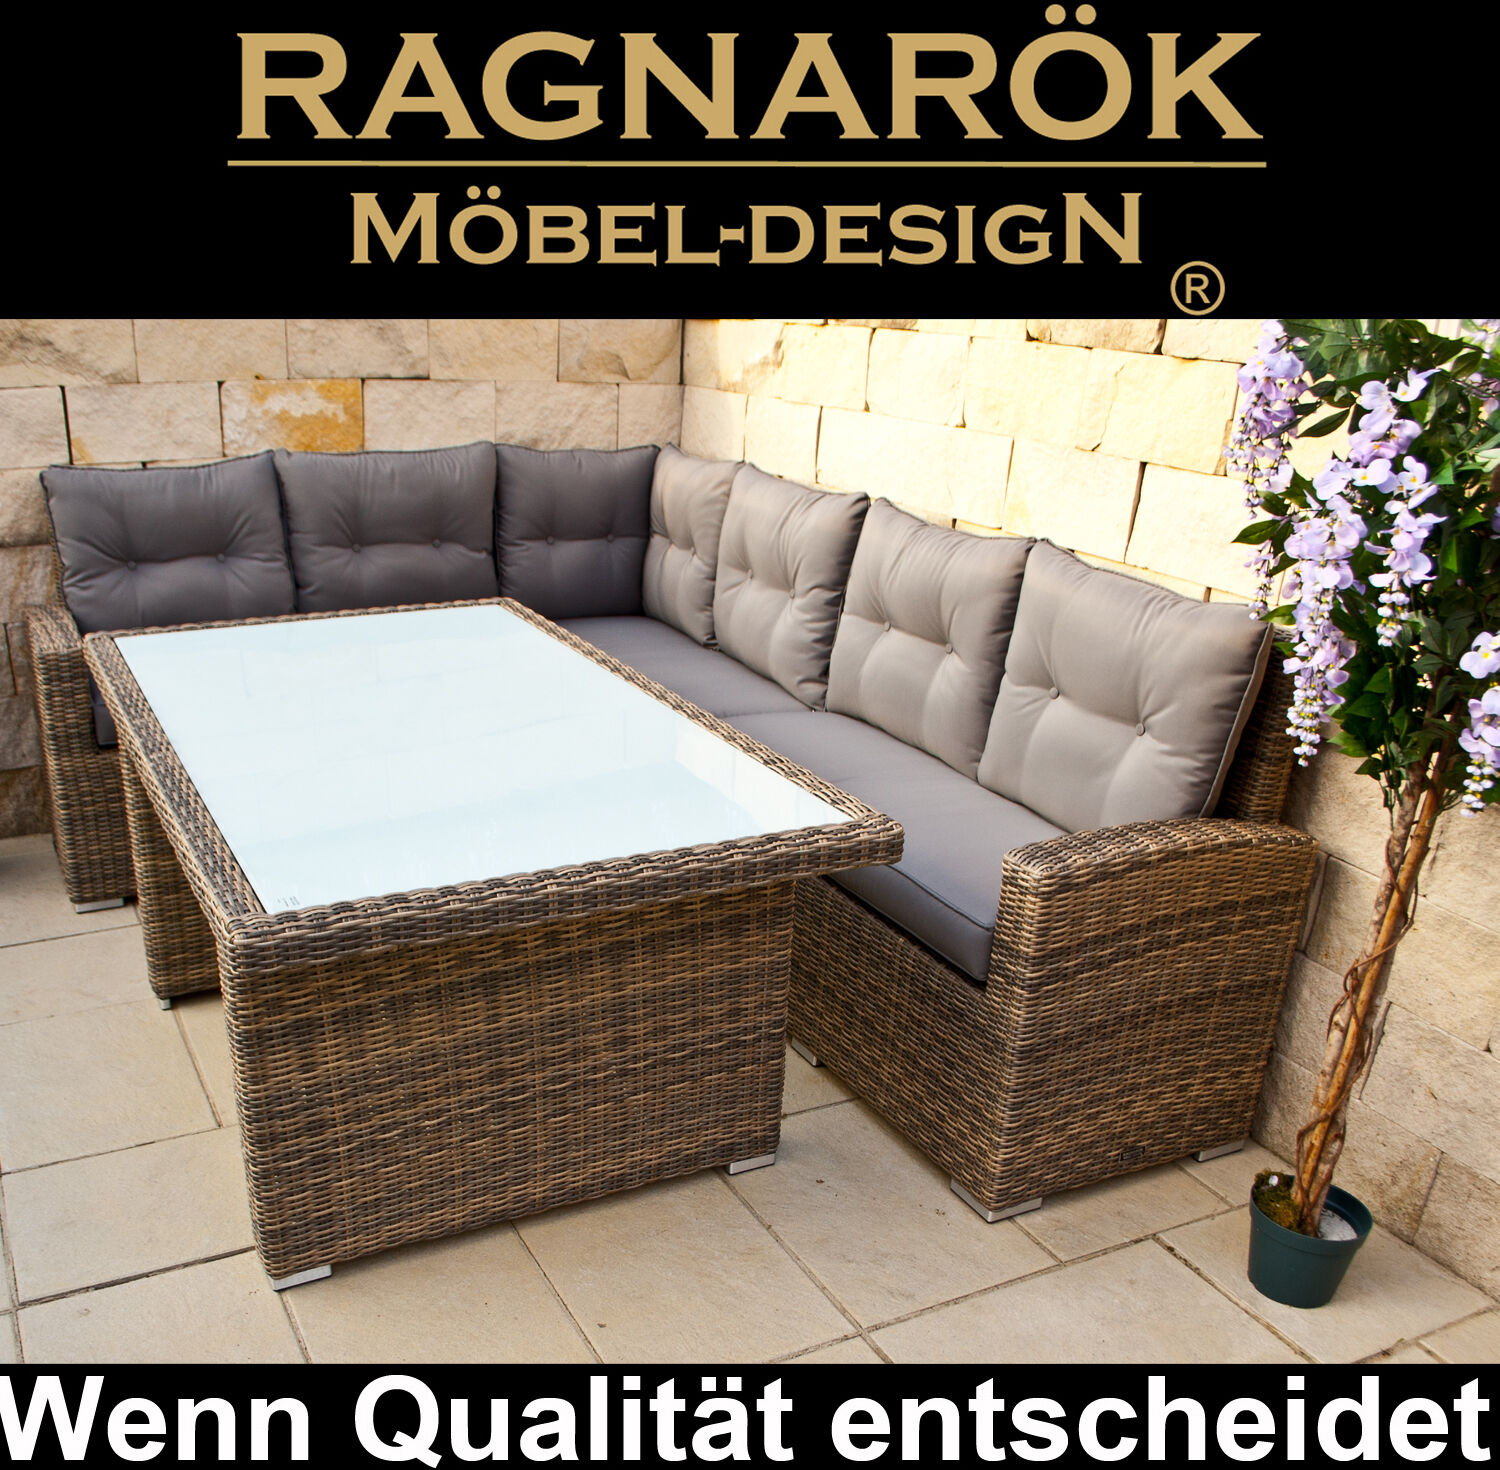 poly rattan gartenm bel hohe dinning lounge ragnar k. Black Bedroom Furniture Sets. Home Design Ideas